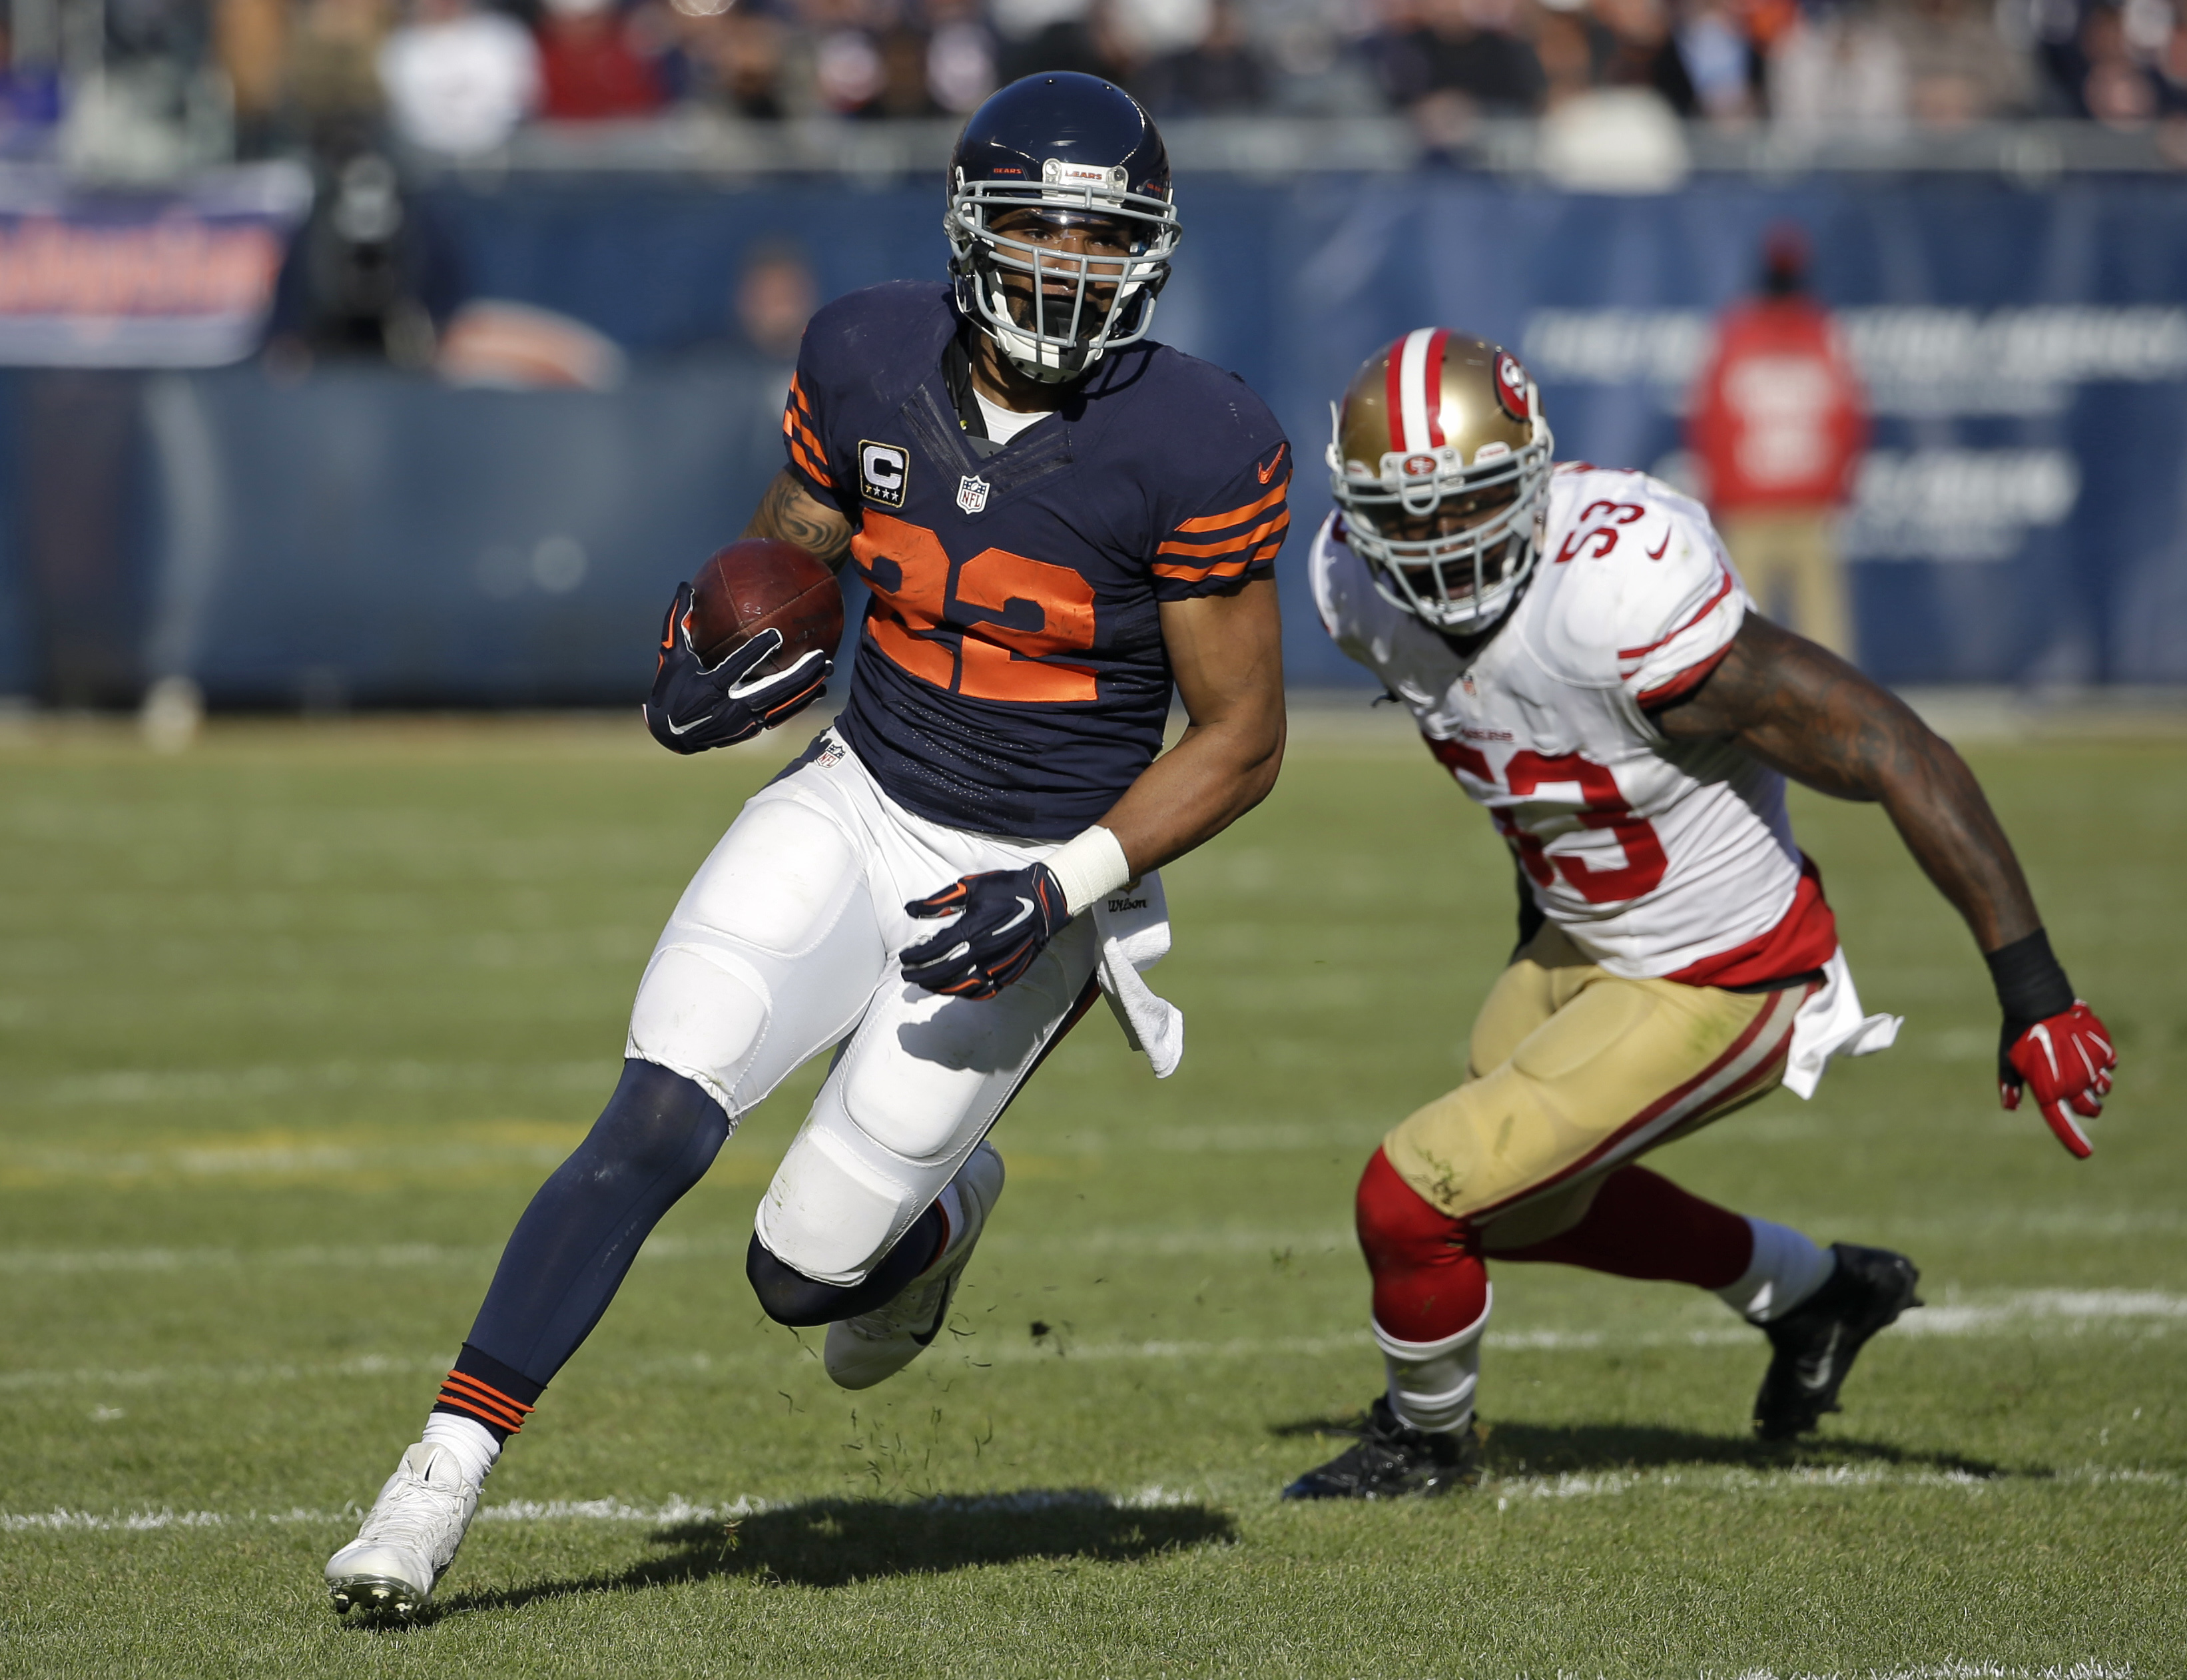 FILE - In this Dec. 6, 2015, file photo, Chicago Bears running back Matt Forte (22) rushes against the San Francisco 49ers during an NFL football game in Chicago. Forte, a two-time Pro Bowl running back announced on Instagram Friday, Feb. 12, 2016, mornin